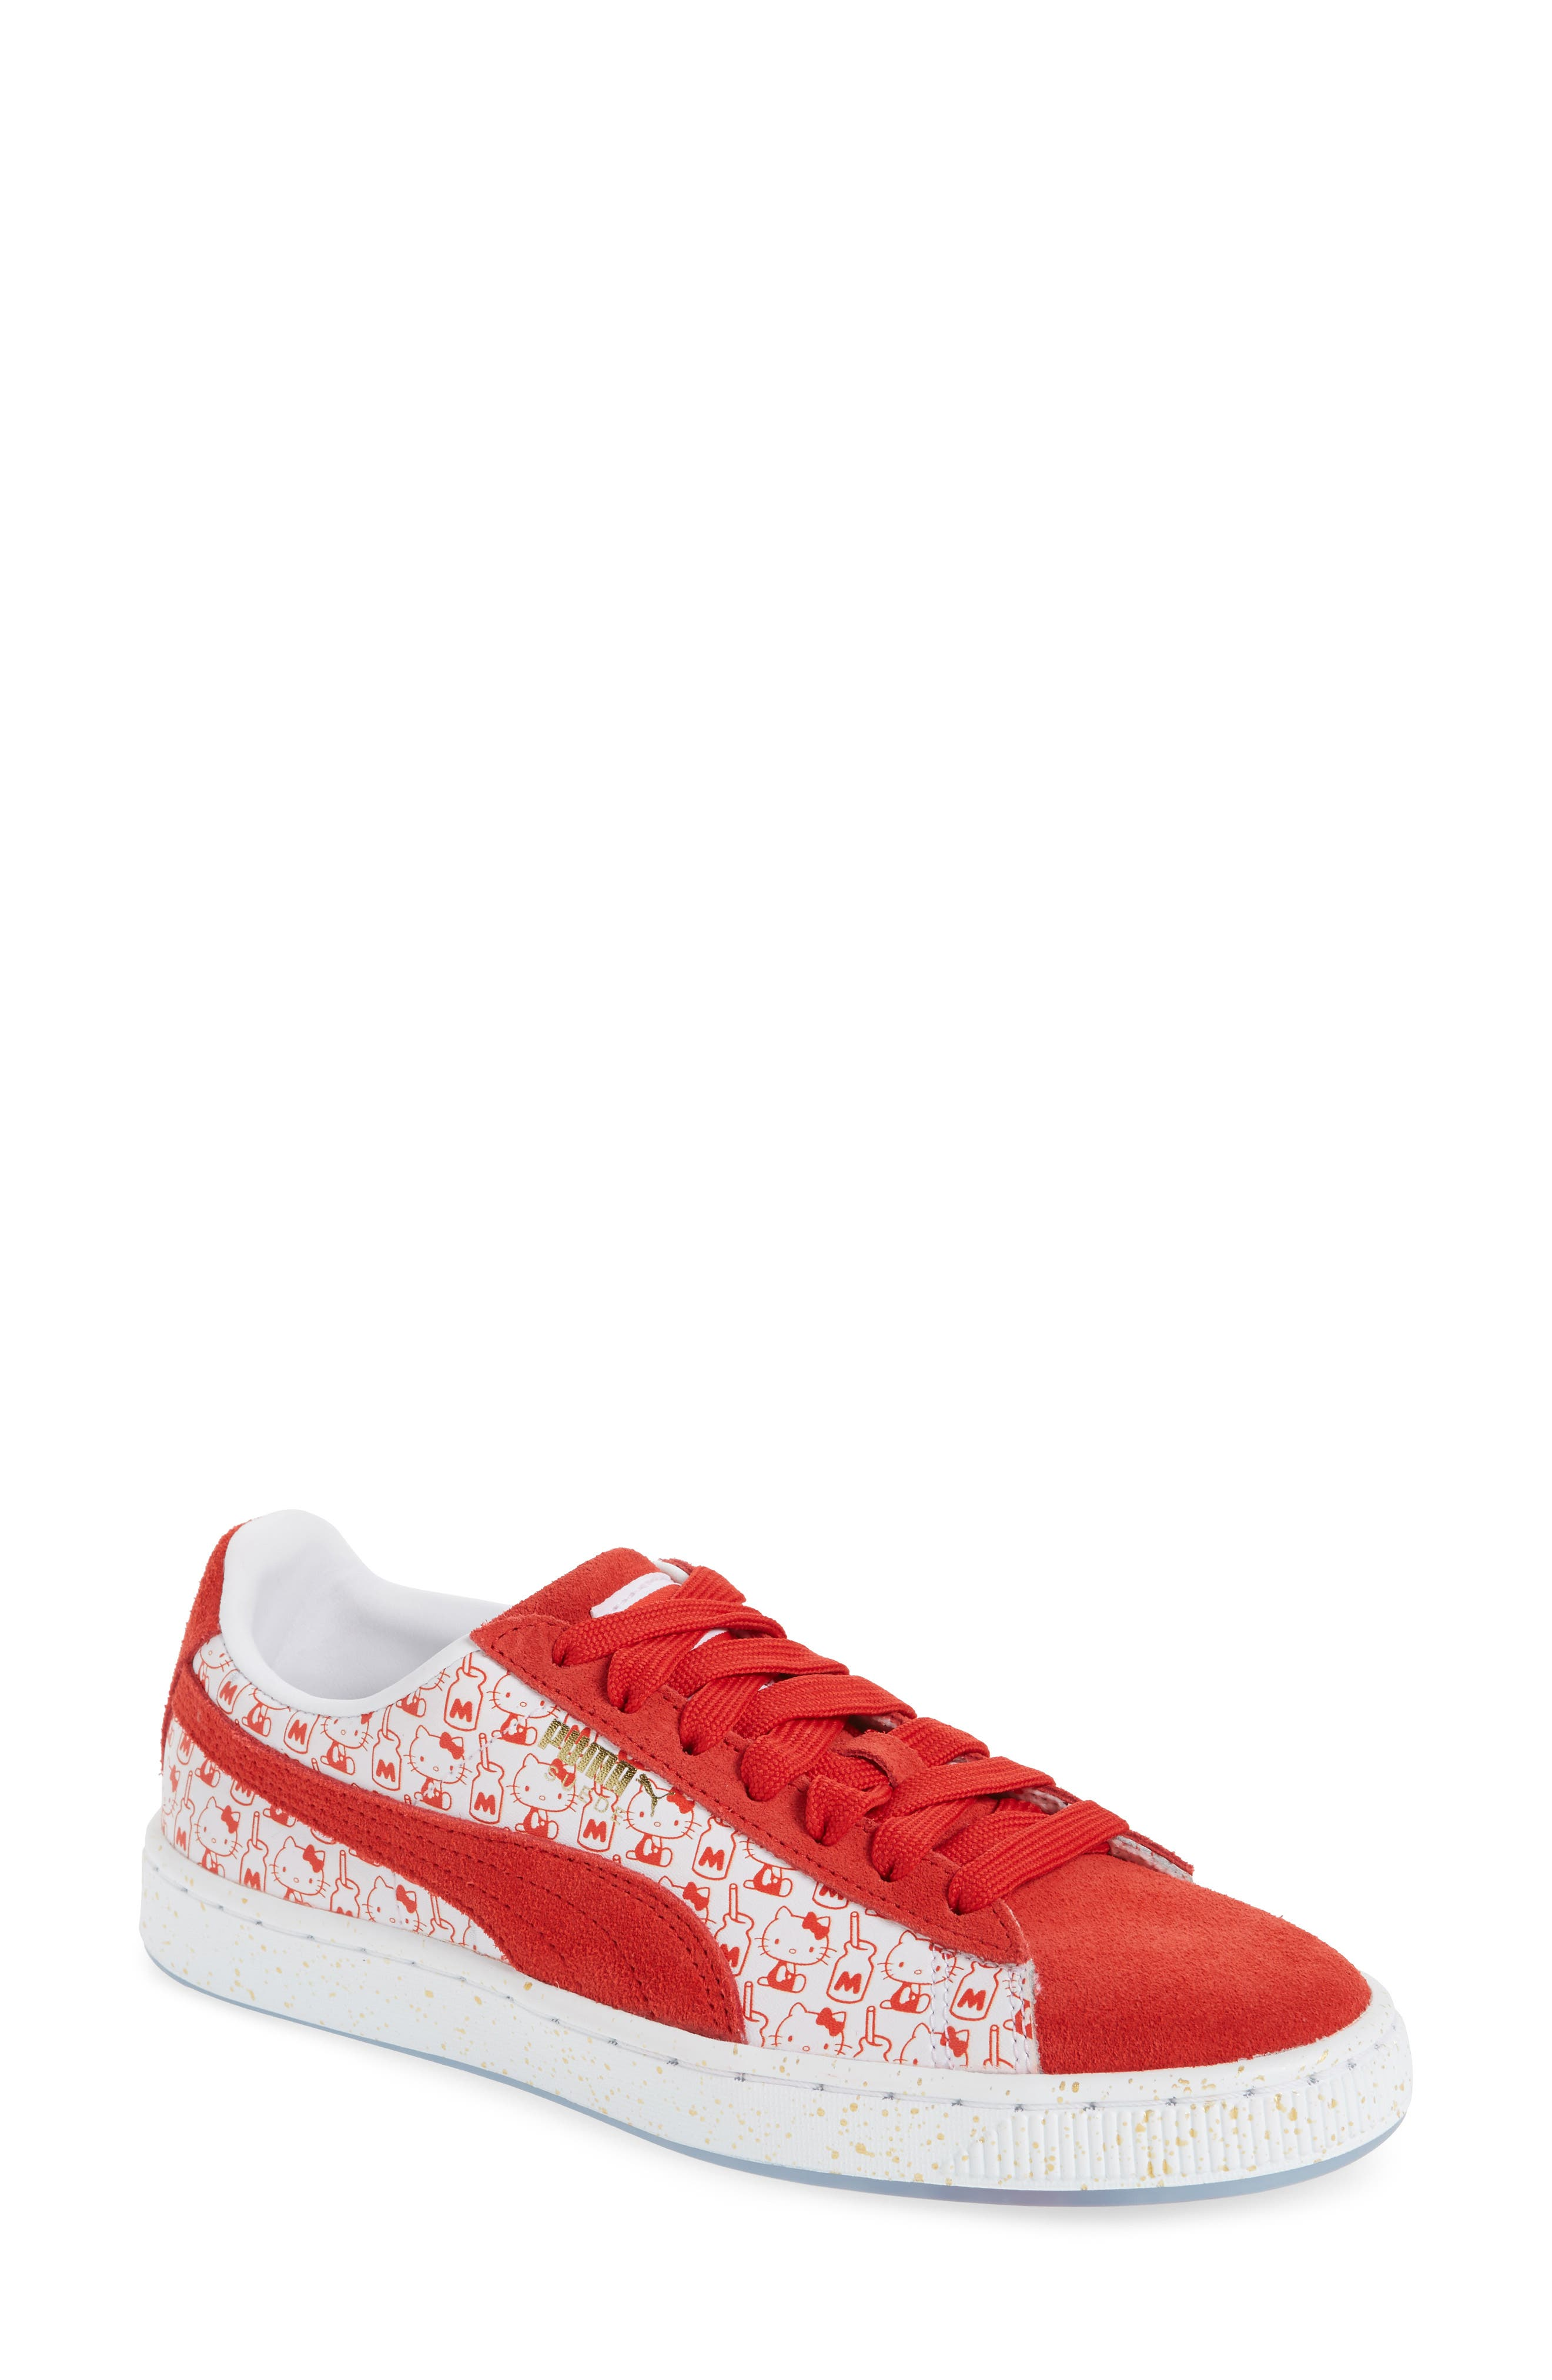 PUMA x Hello Kitty Suede Classic Sneaker (Baby, Walker, Toddler, Little Kid & Big Kid)